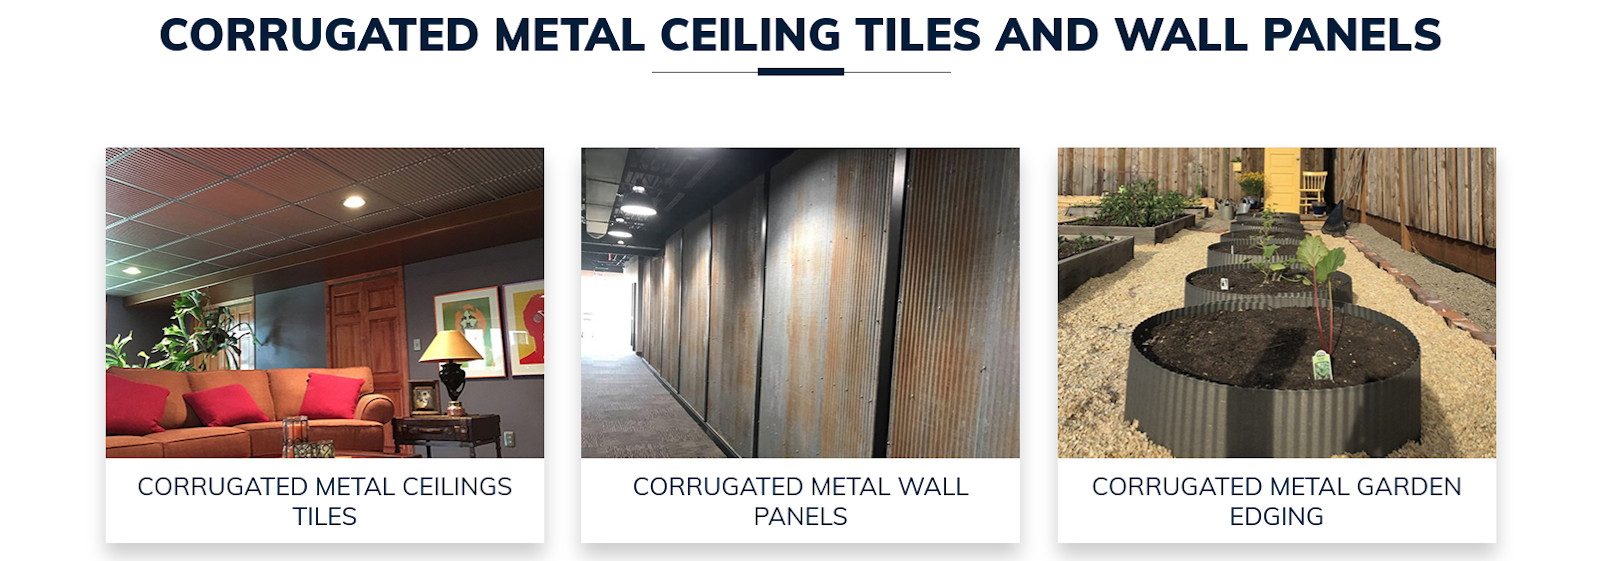 Corrugated metal ceiling tiles and wall panels